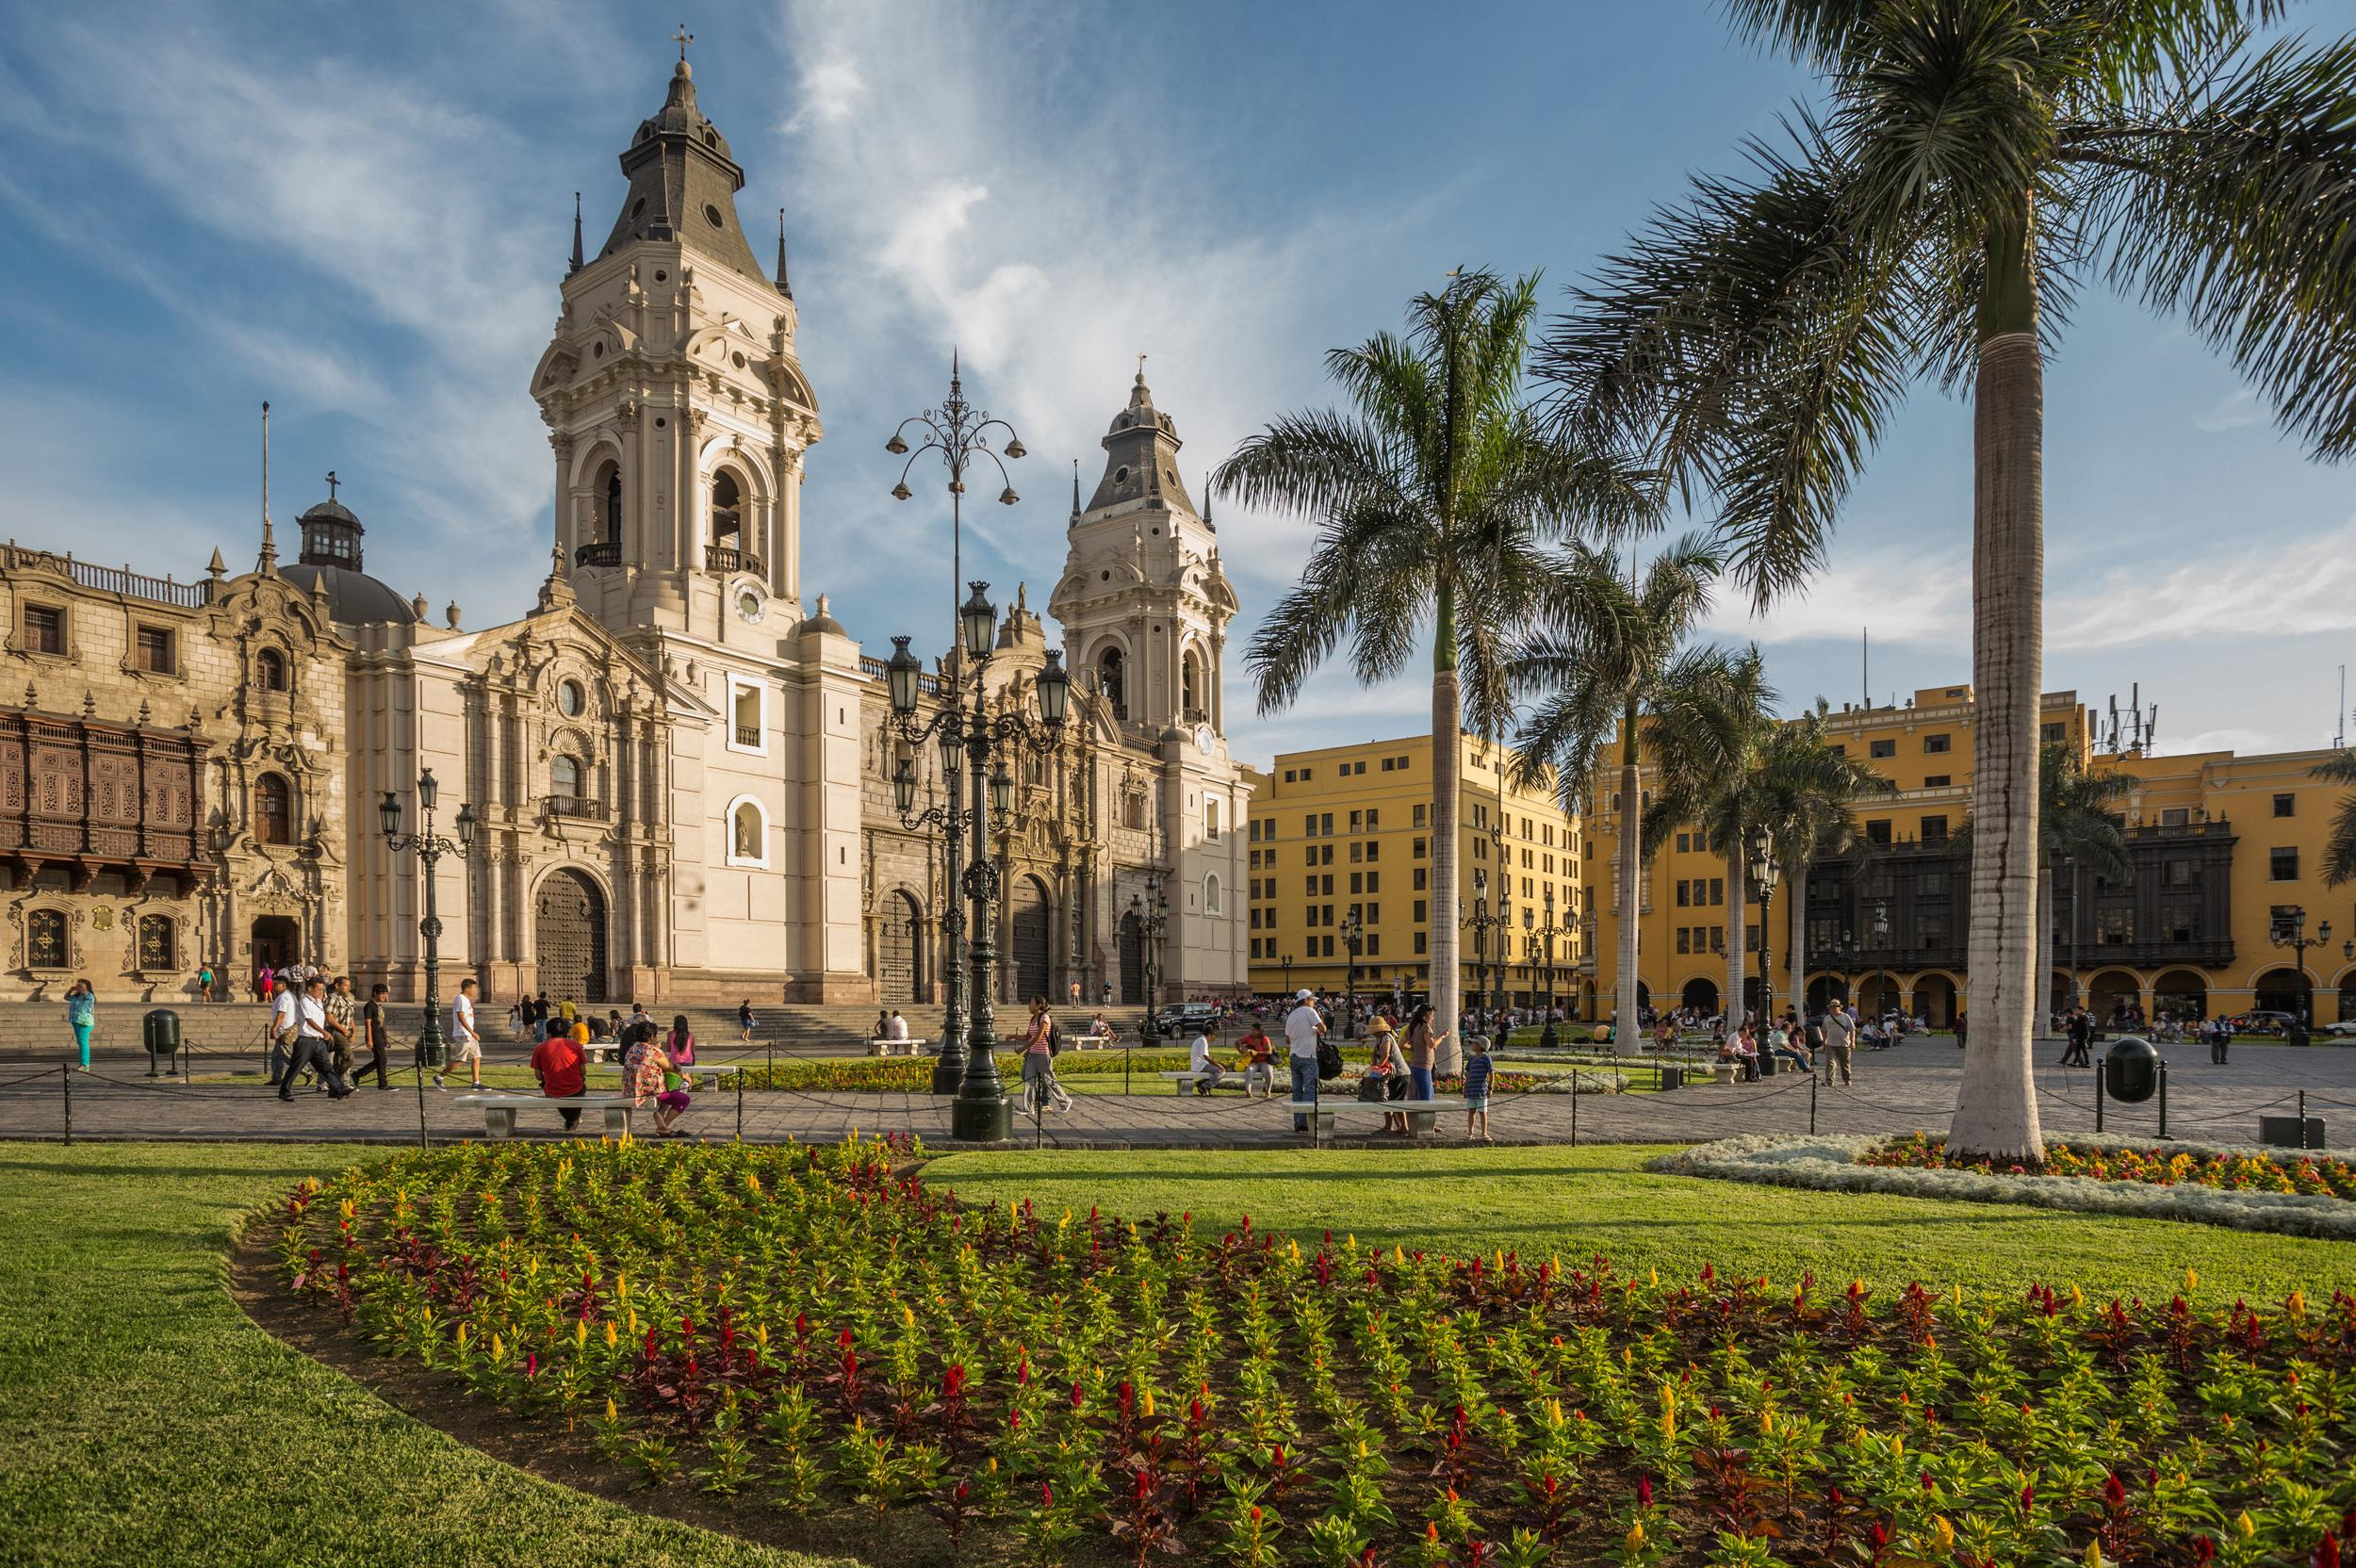 """<a href=""""http://www.britishairways.com/en-gb/destinations/lima/flights-to-lima"""" target=""""_blank"""">British Airways</a> is launching a new direct flight to Lima, capital of Peru, on 4 May 2016. The flights will operate three times a week on Wednesdays, Fridays and Sundays, and cost from £765 return in World Traveller. Lima is home to impressive colonial architecture, elegant district Miraflores and a world-class culinary scene."""